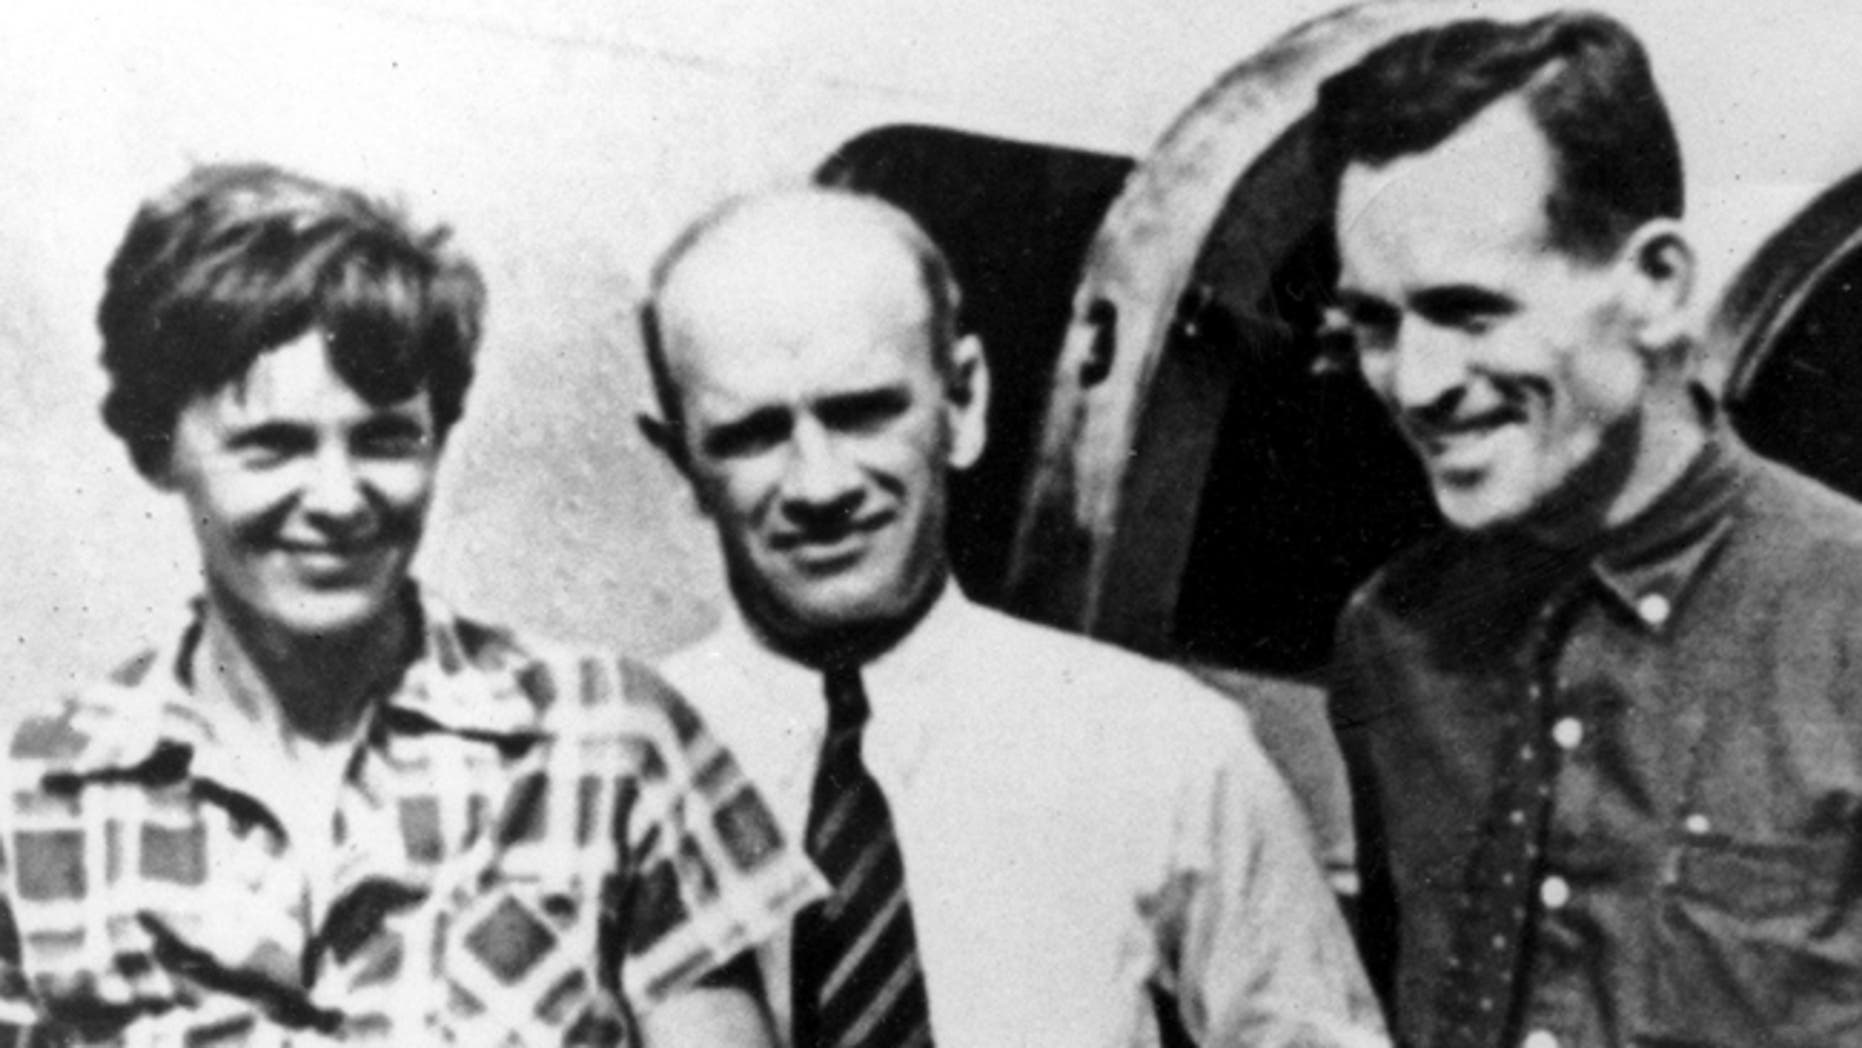 Westlake Legal Group earhart-1 This Day in History: July 2 fox-news/us/this-day-in-history fox news fnc/us fnc article 26695a3f-7d29-5566-9f54-1c952046c53d